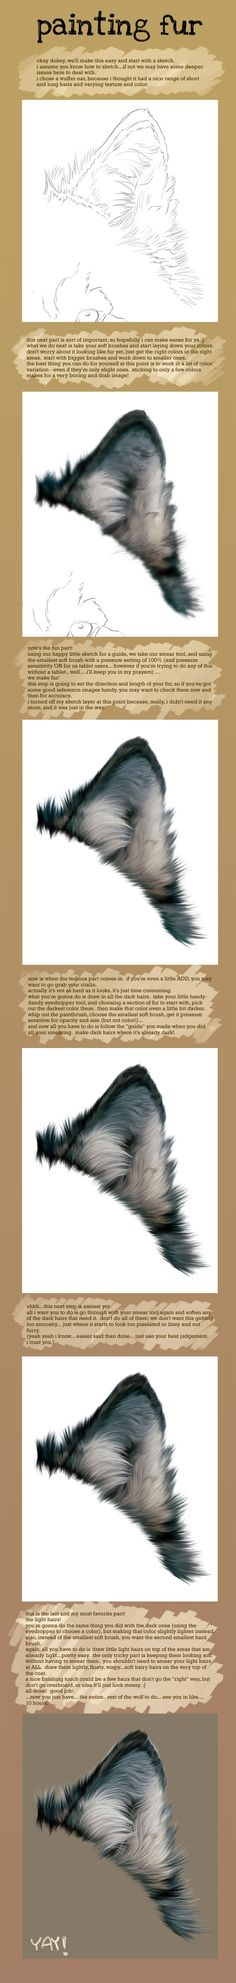 Fur Painting Tutorial by Novawuff.deviantart.com on @deviantART